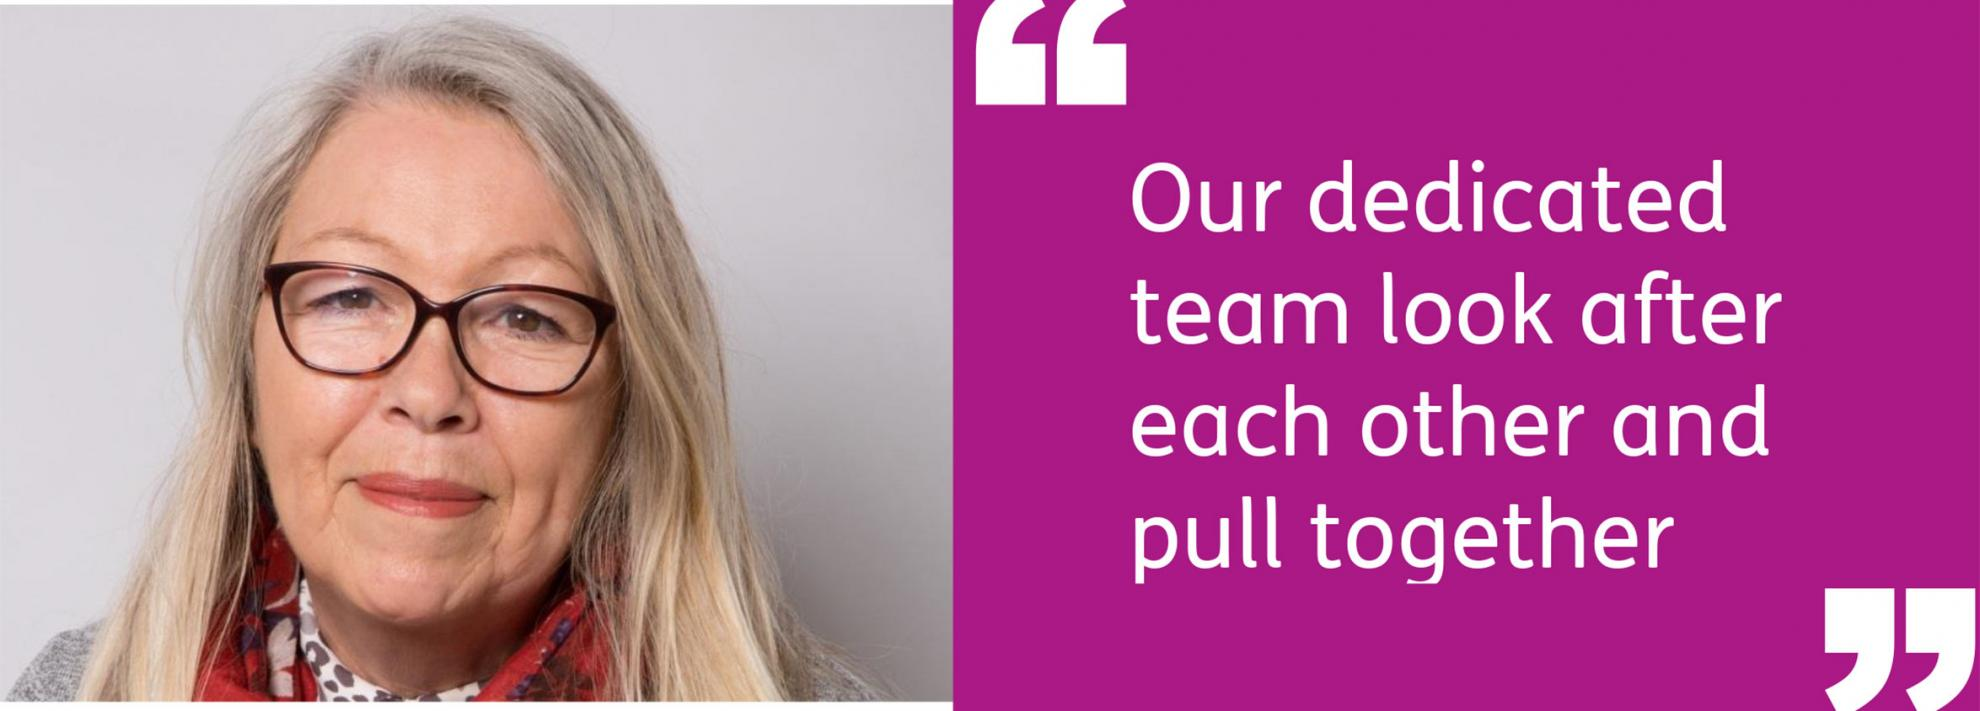 "Gill Carpenter - ""Our dedicated team look after each other and pull together."""